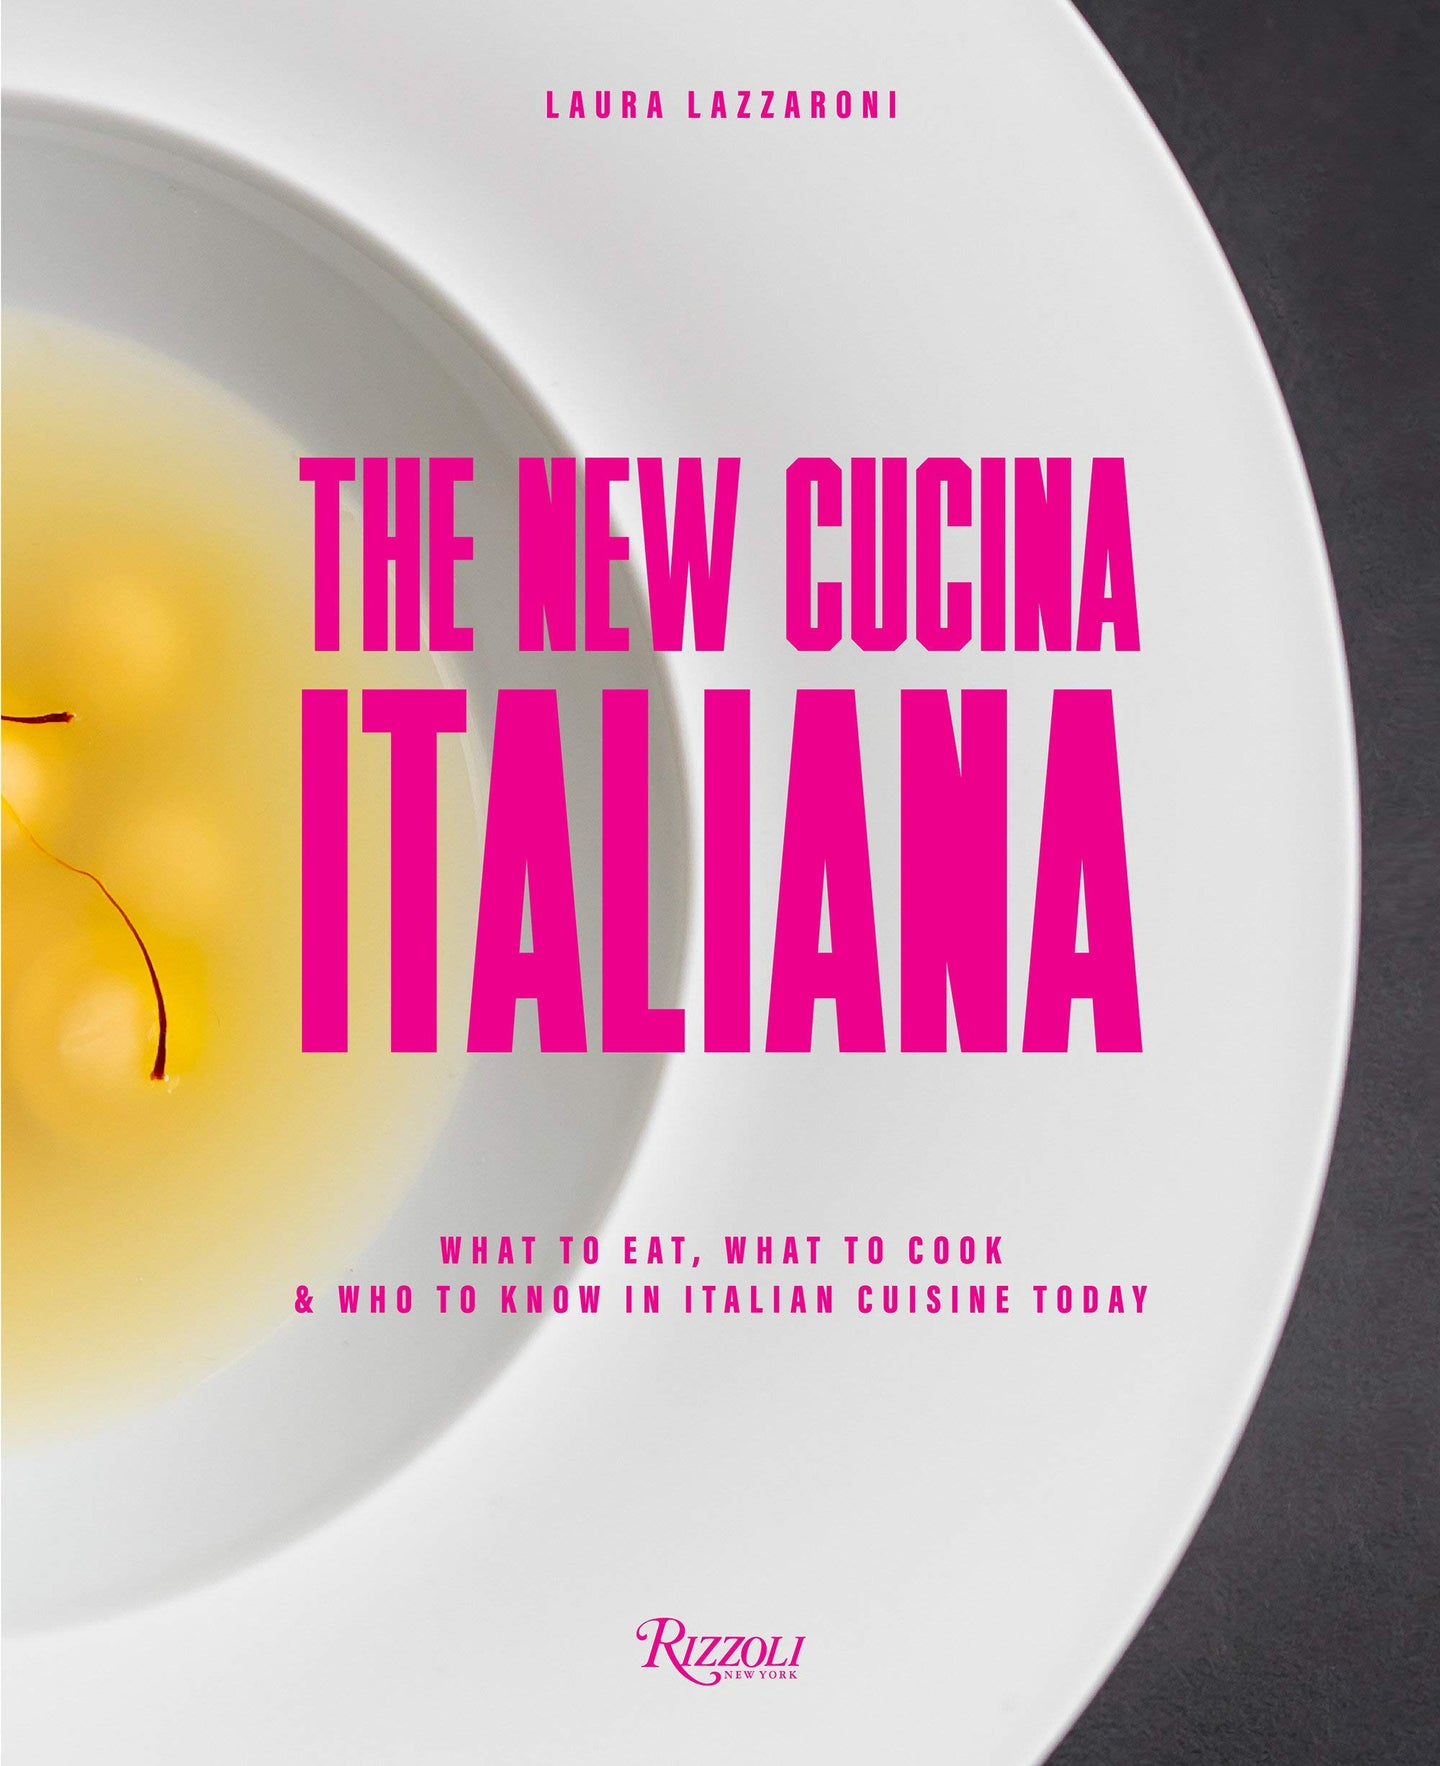 The New Cucina Italiana: What to Eat, What to Cook, and Who to Know in Italian Cuisine Today - Laura Lazzaroni